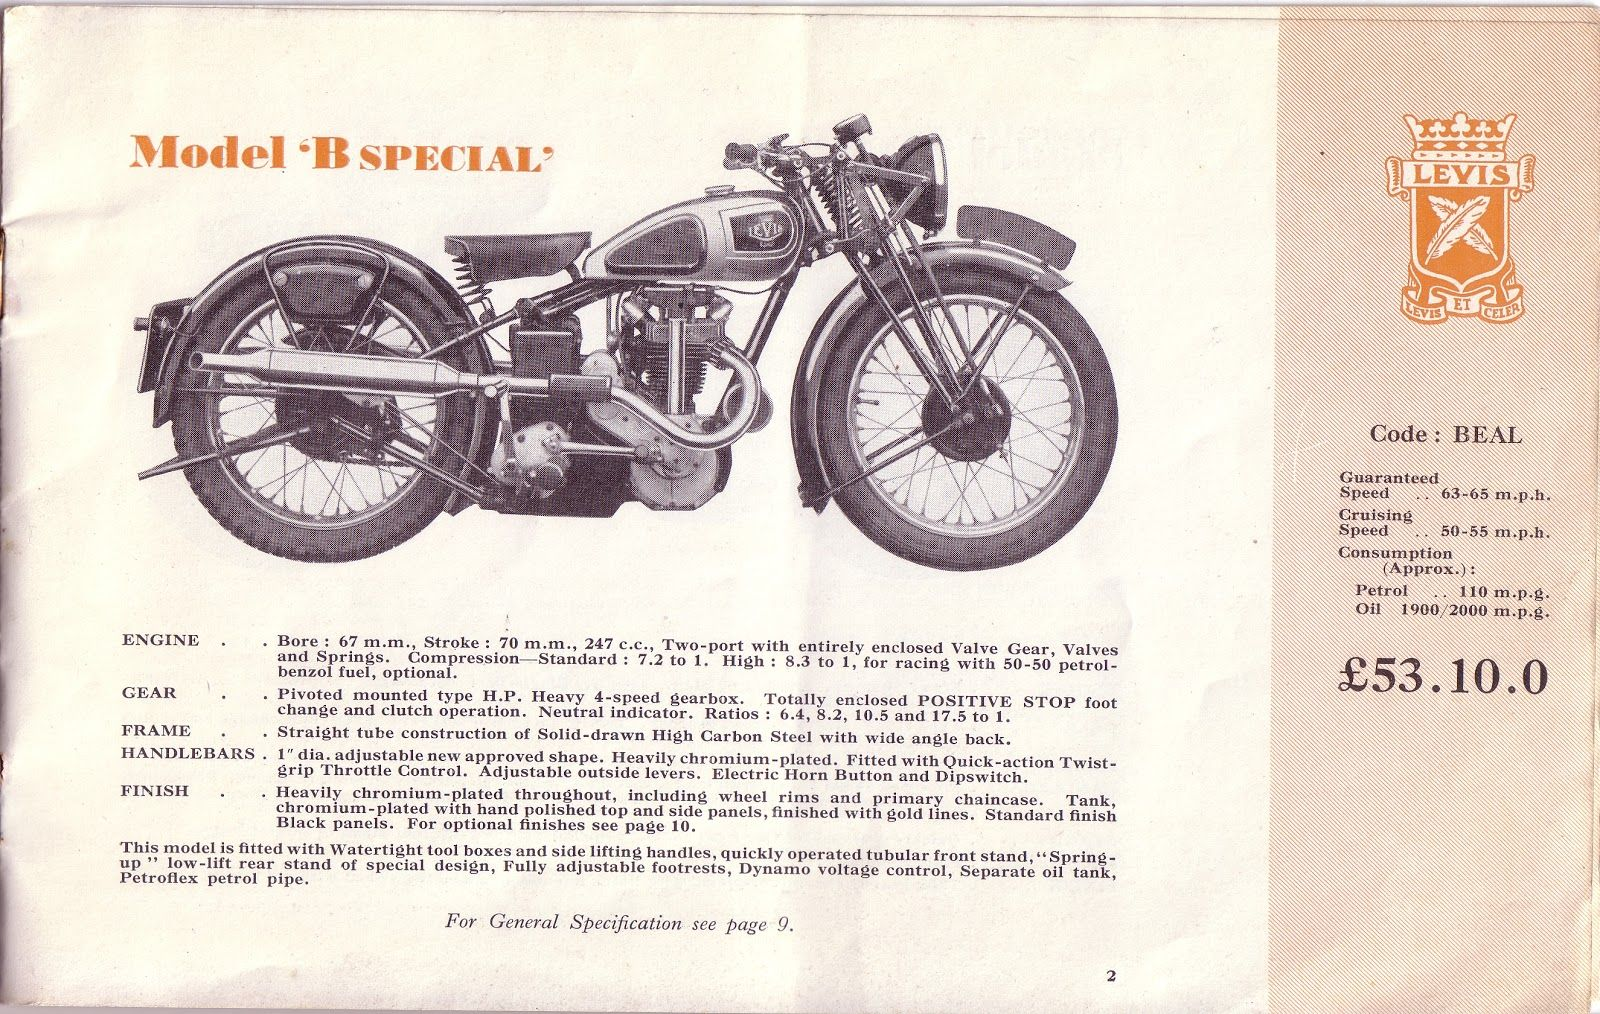 Red Devil Motors: Levis Motor Cycles 1938 brochure